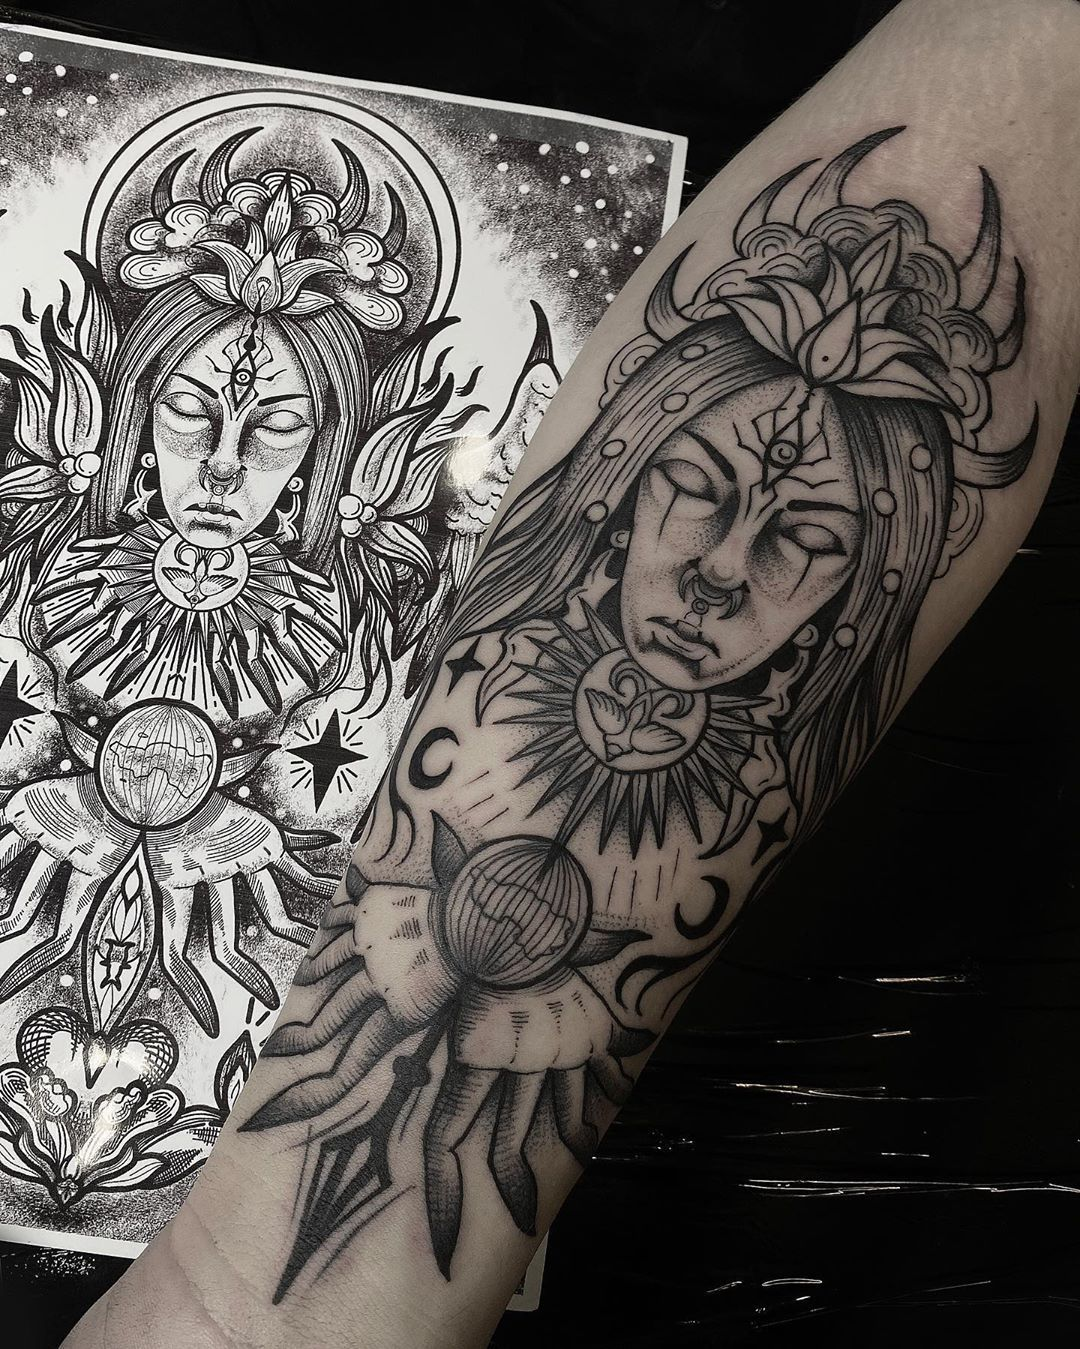 A shaman with the powers of communicating with superhuman beings - demons or ghosts of ancestors through ecstasy. This graphic design was made by Alice Priest @lsdtattoo How do you like this job? We invite you for more ideas related to magic!✨ #poznan #poznantattoo #poland #polandtattoos #linework #graphic #ornaments #shaman #bodyart #blacktattoo #tattooartists #tattoo #tatuaz #lsdtattoo #7_sins_tattoo